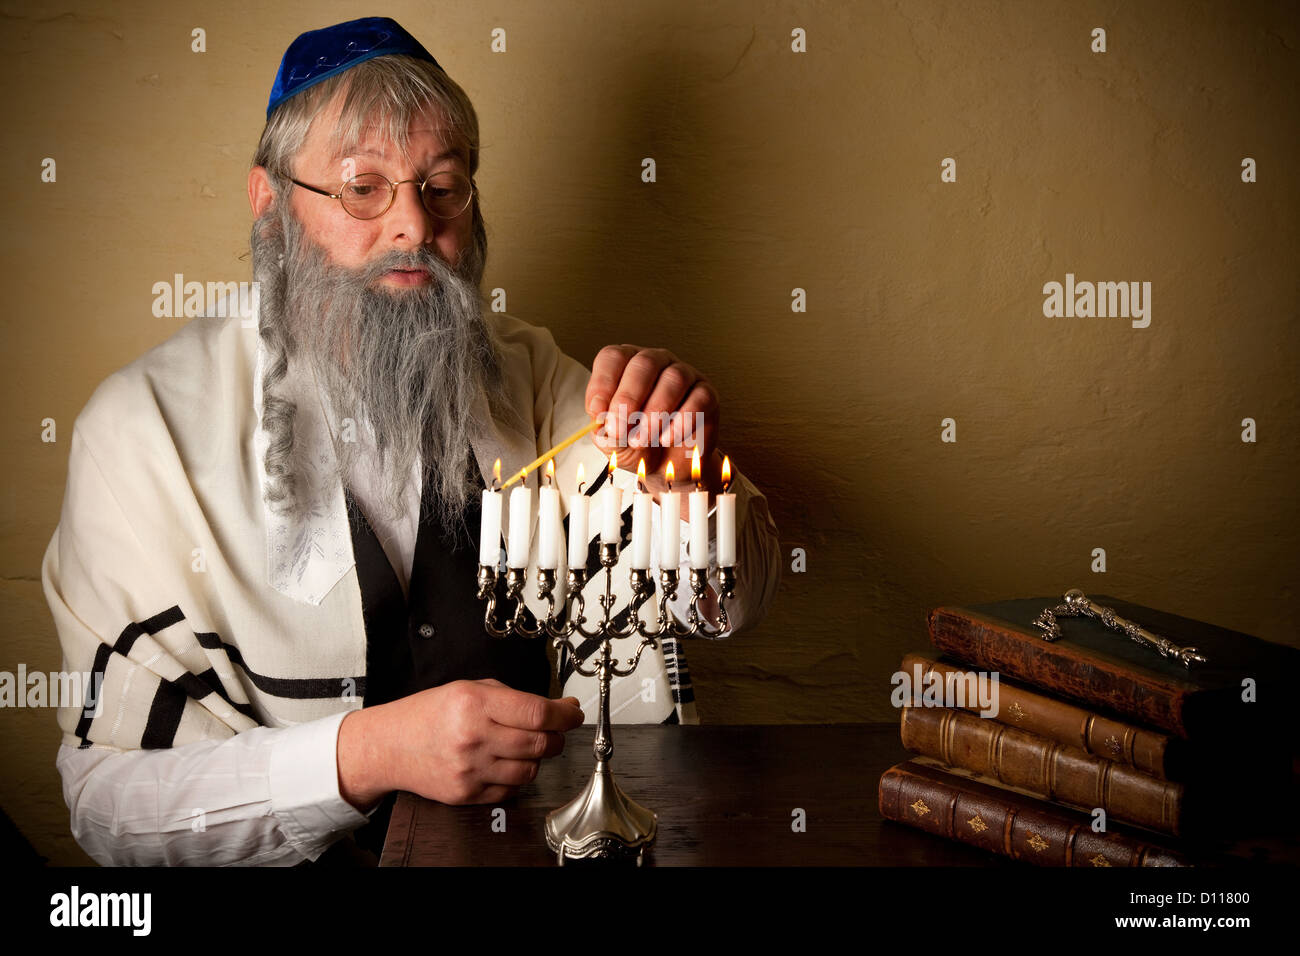 Old jewish man with beard lighting candles for hannukah - Stock Image